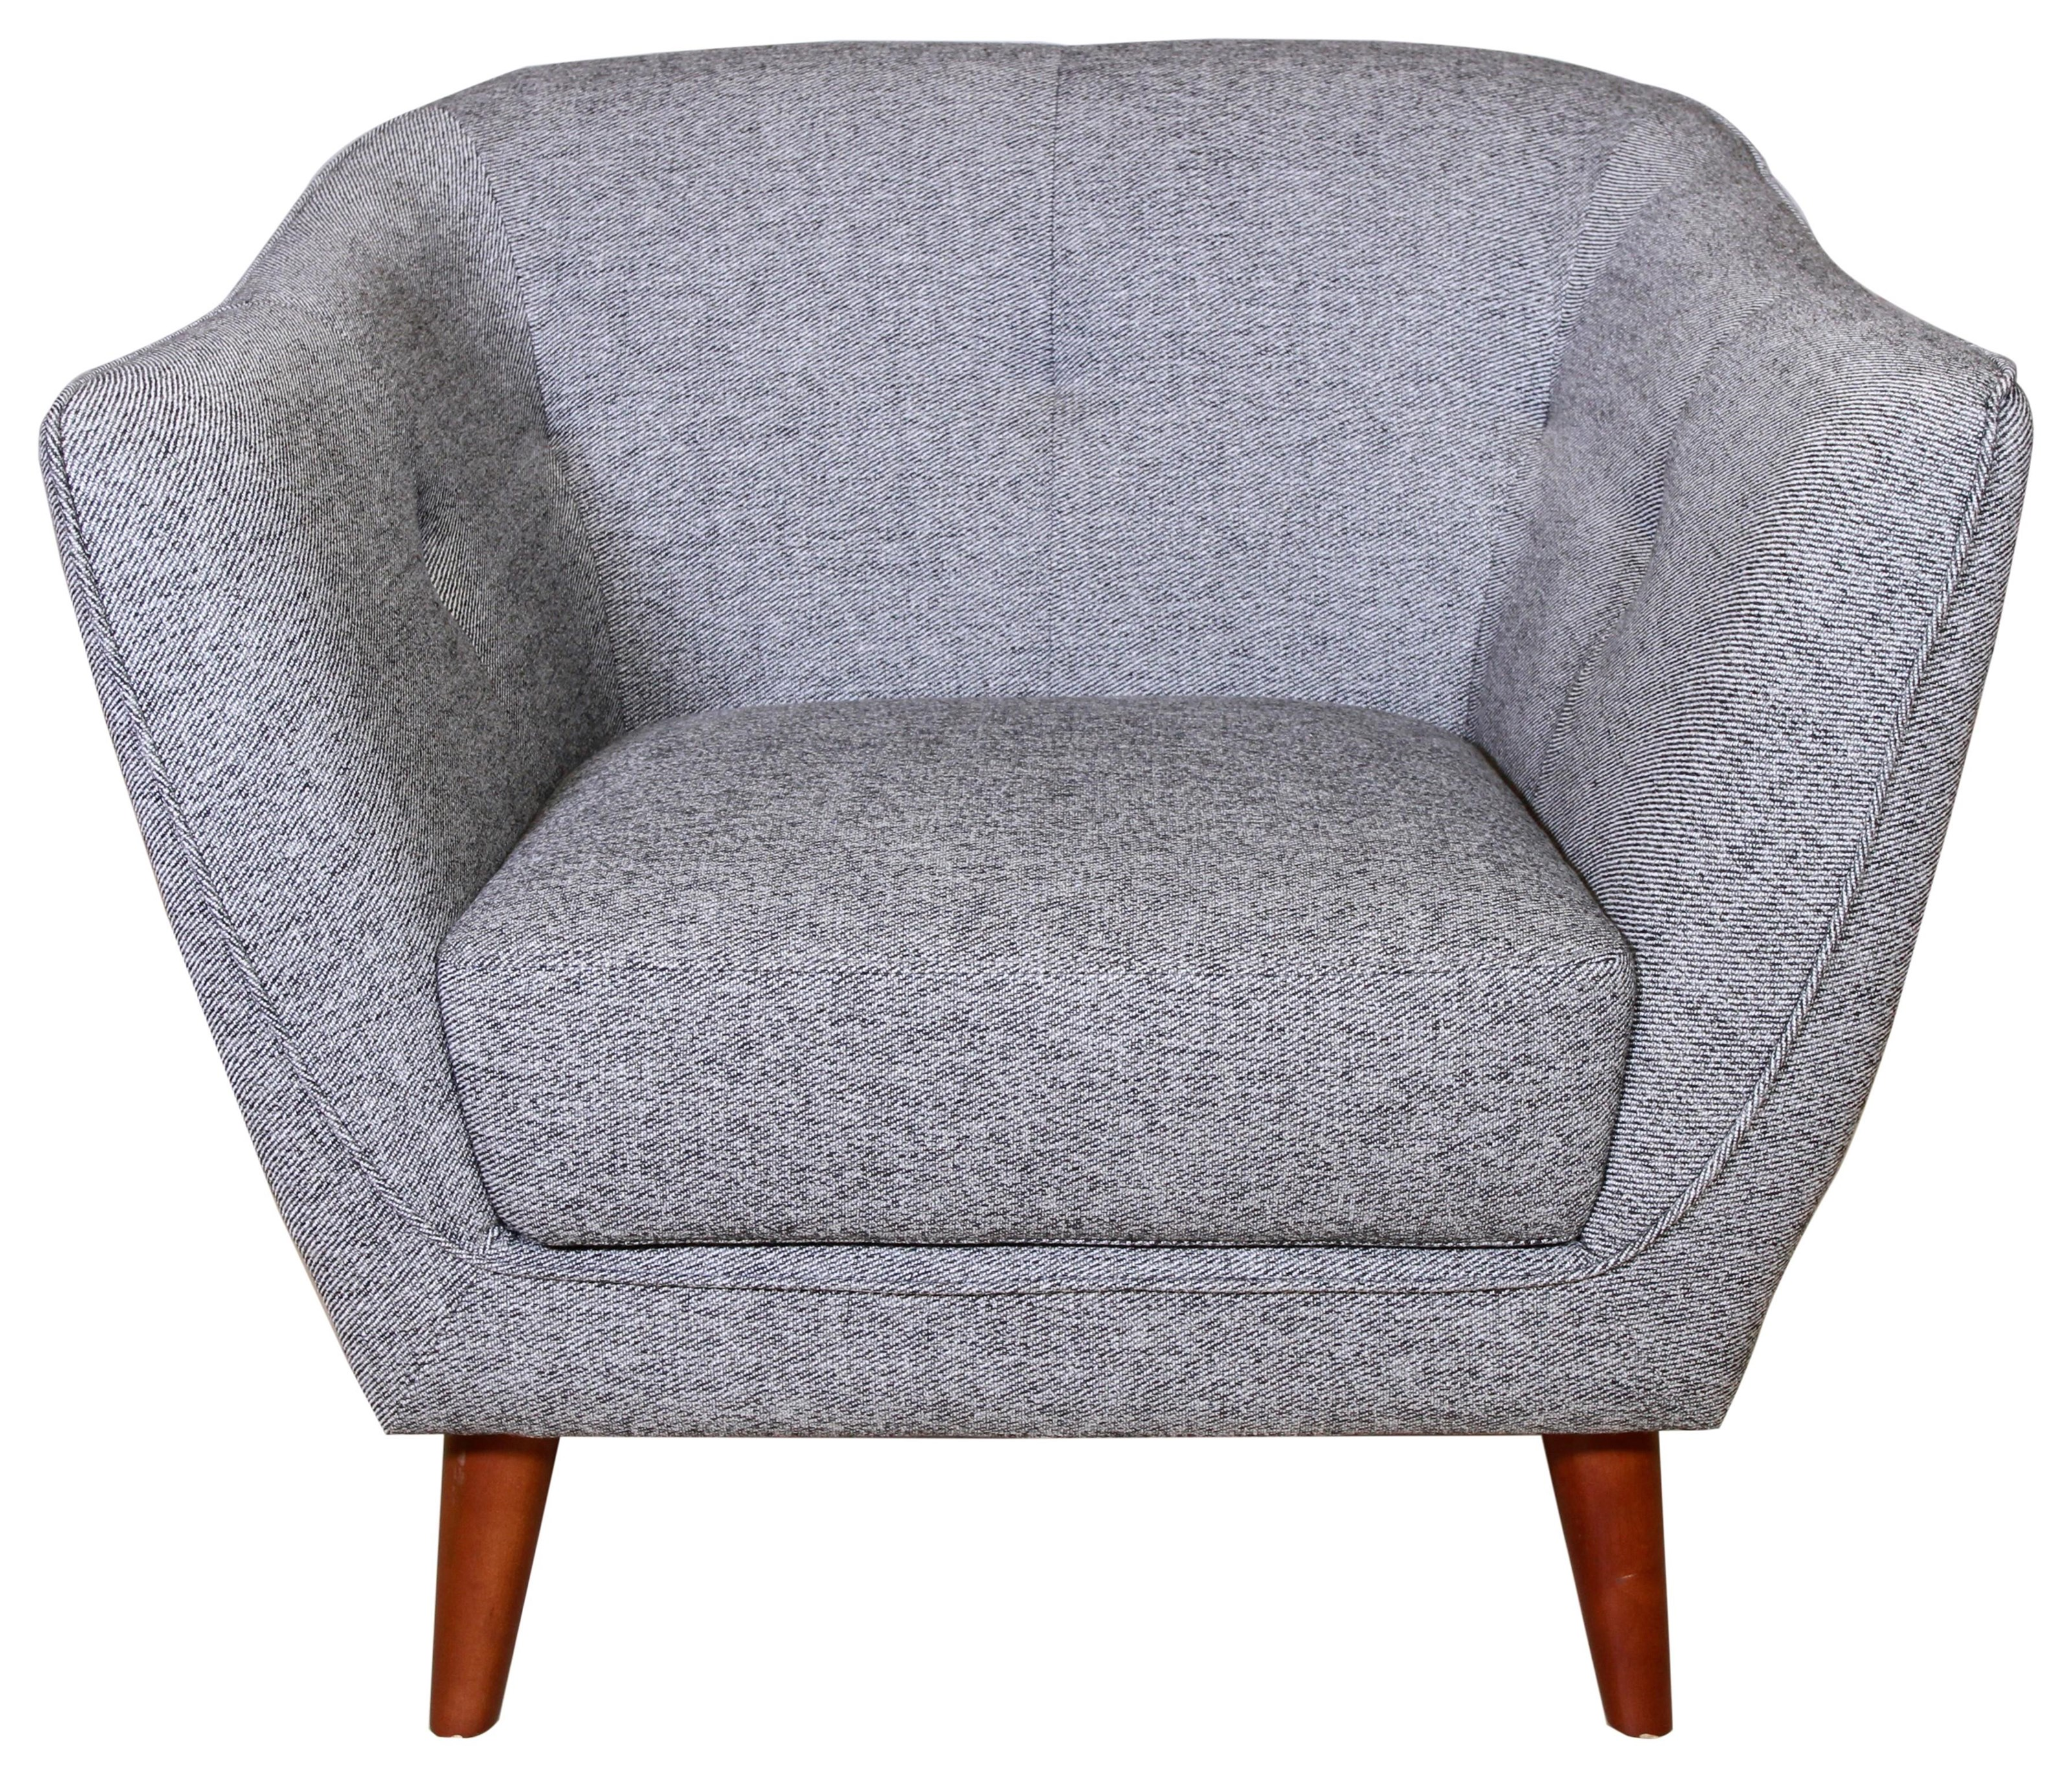 Avery Chair by Urban Chic at HomeWorld Furniture